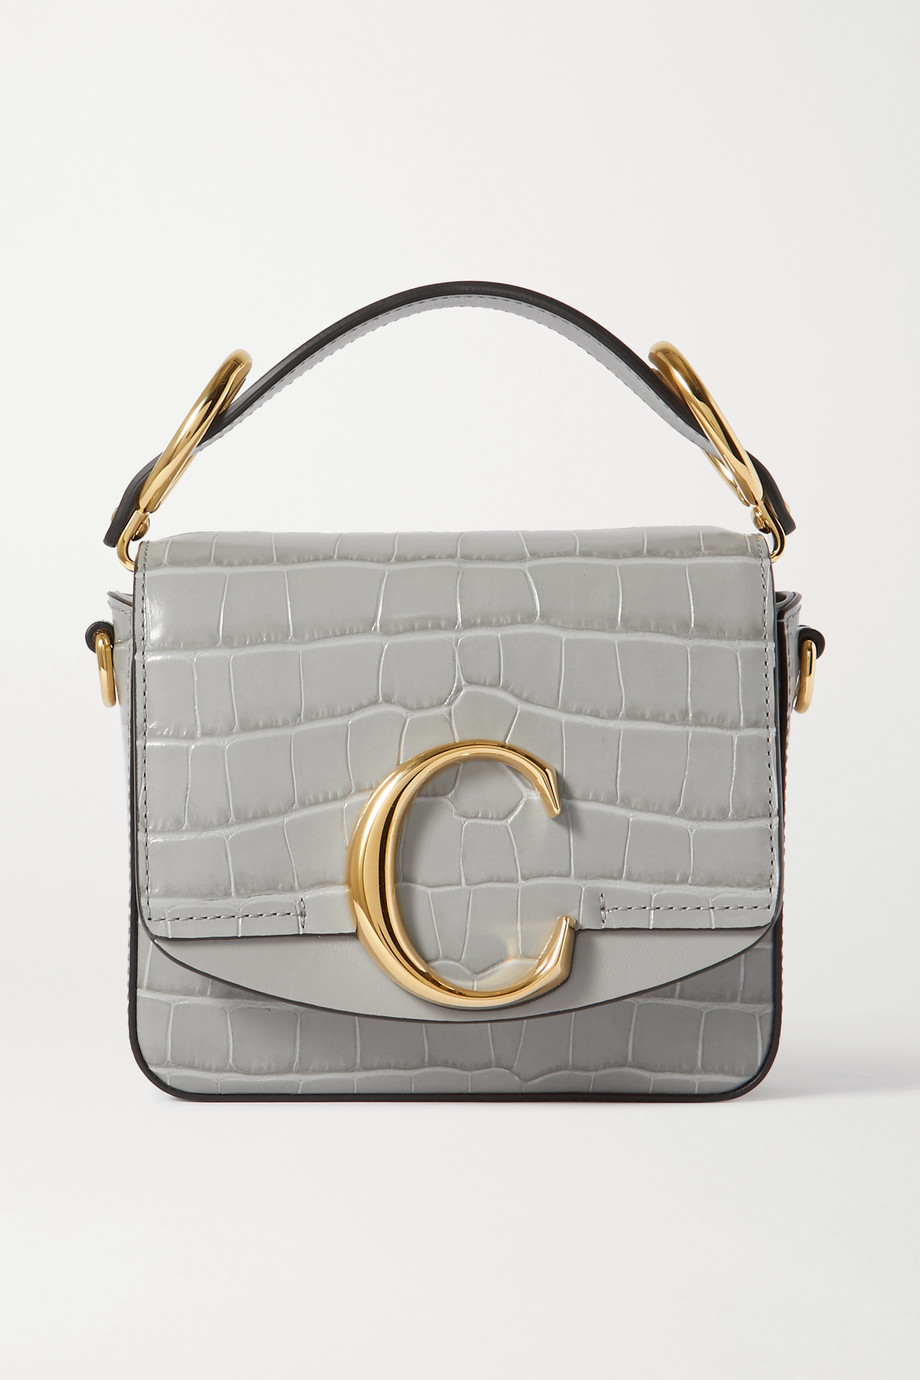 Chloé Chloé C mini smooth and croc-effect leather tote